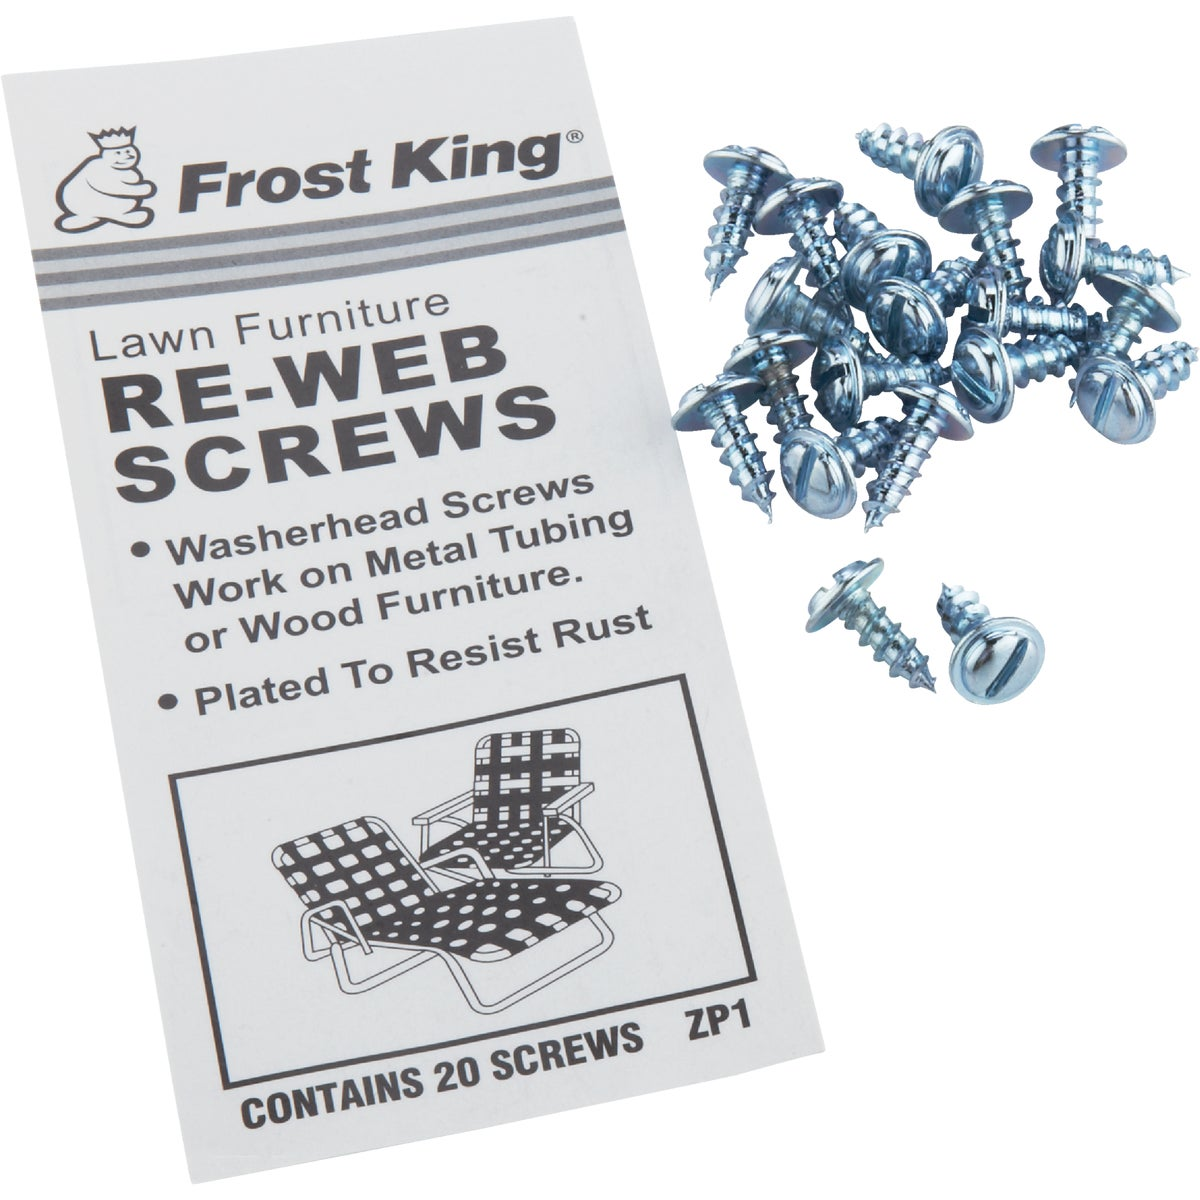 20PK REWEBBING SCREWS - ZP1 by Thermwell Prods Co